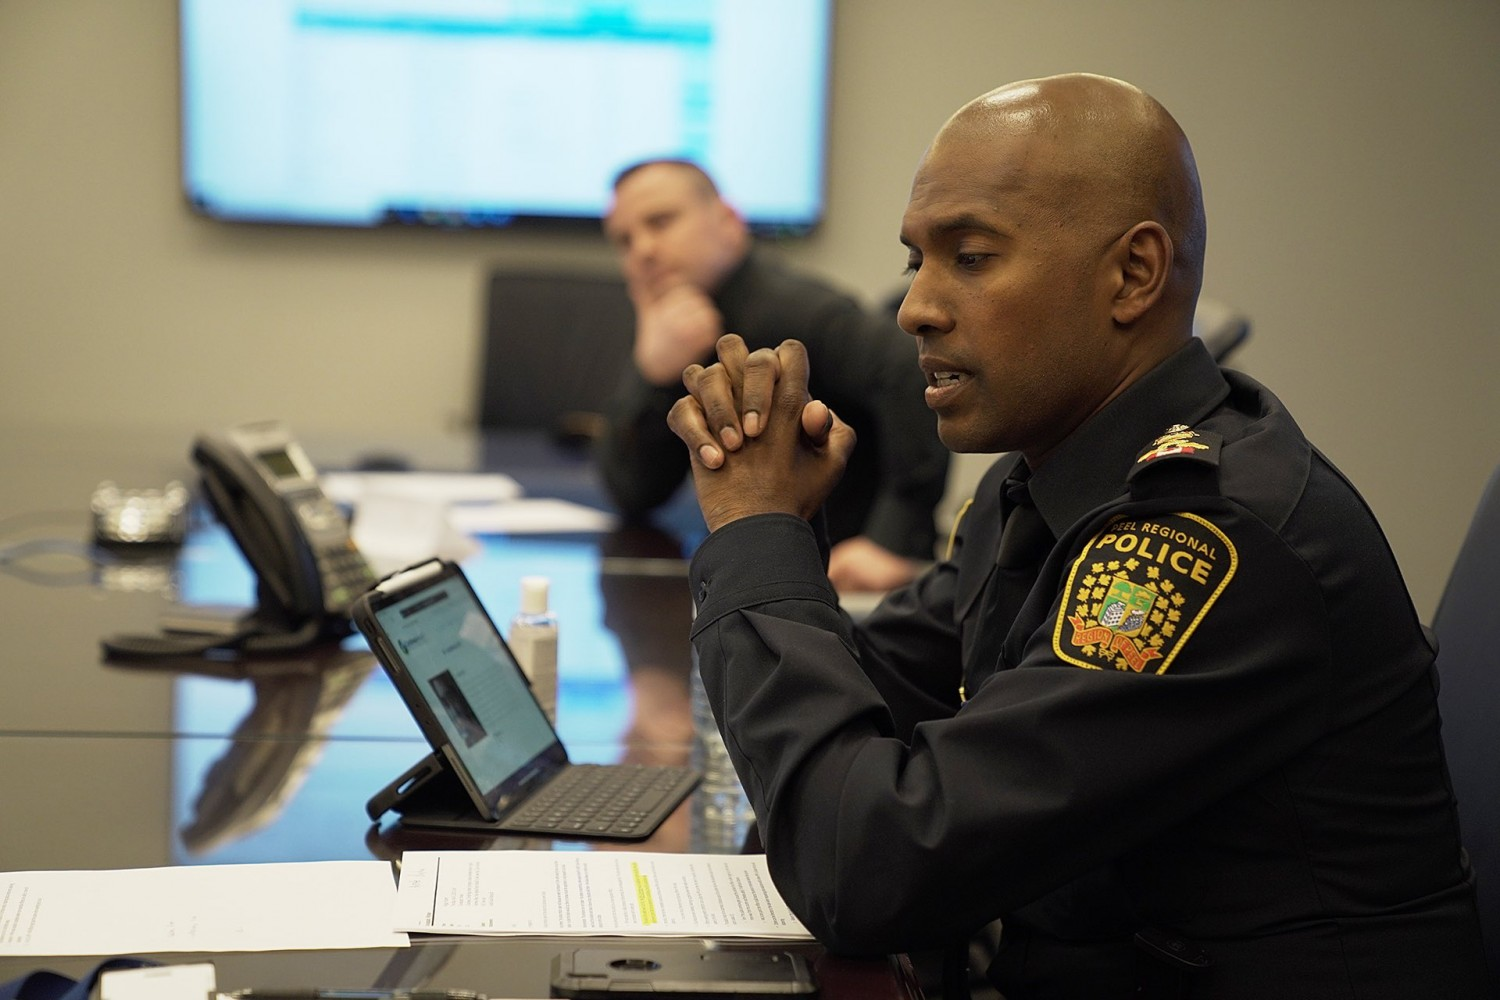 Chief recruits reinforcements from Halton to help fix issues that plague Peel police